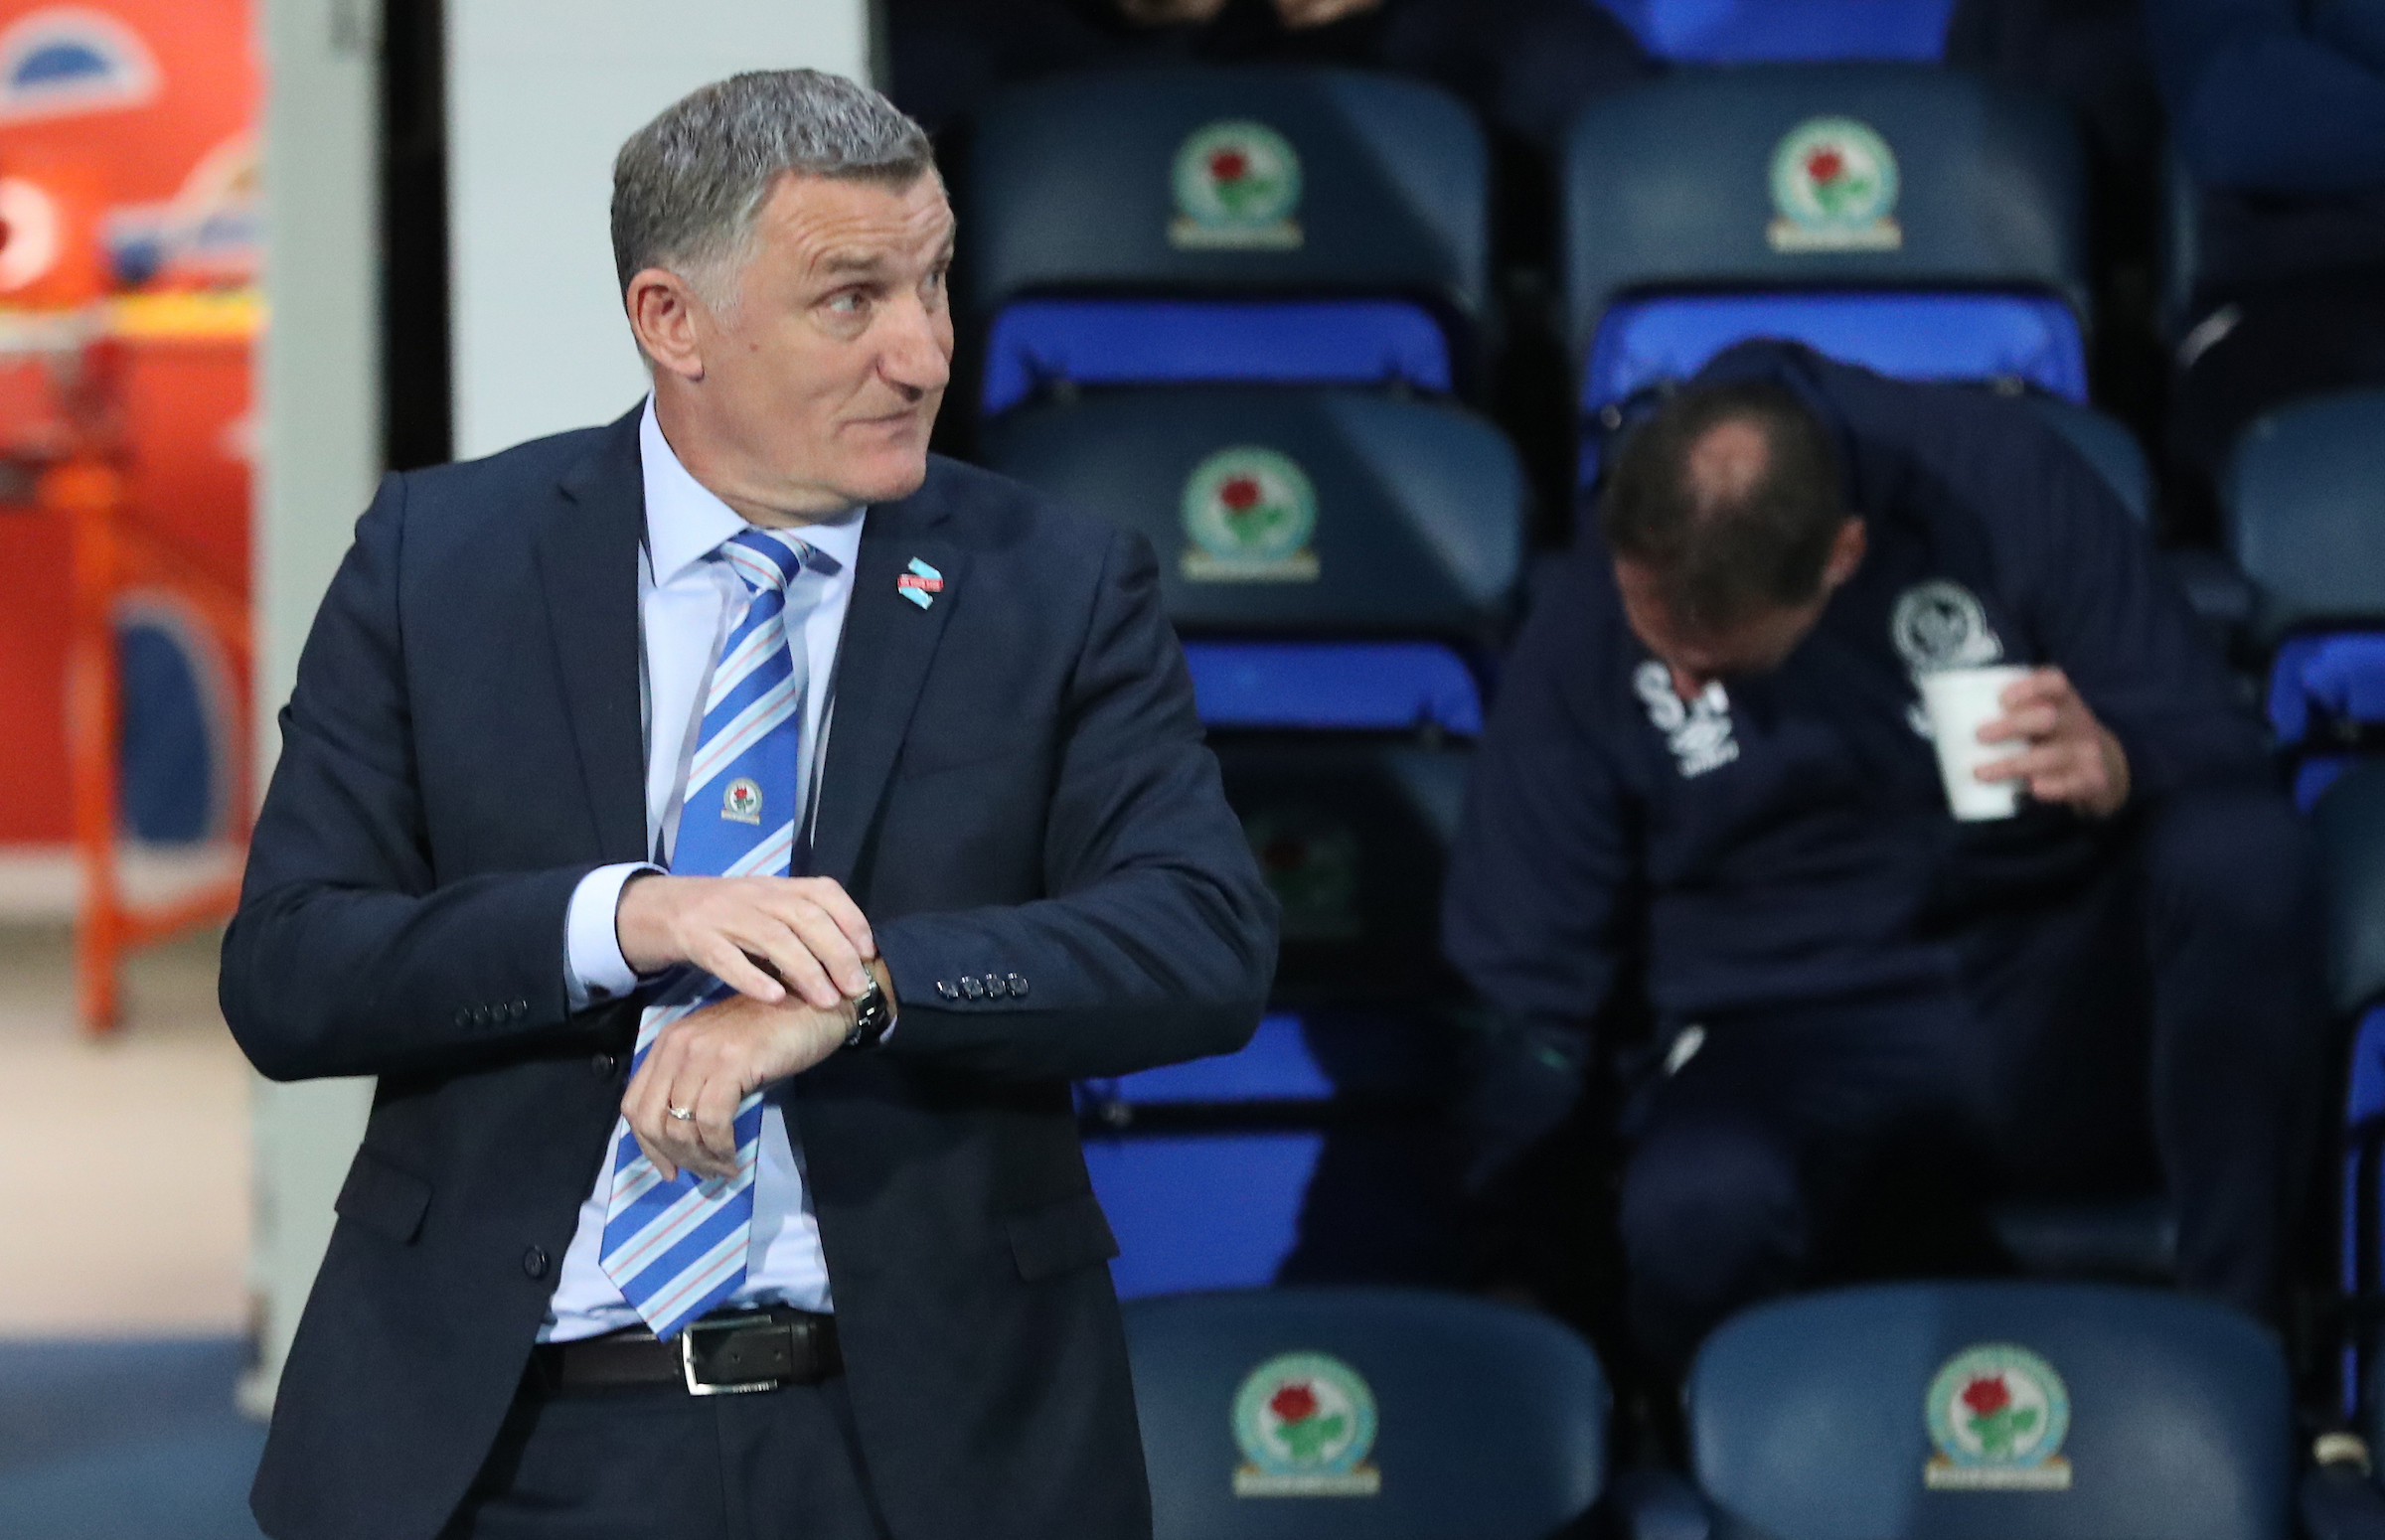 Tony Mowbray's side are 10th in the table with 12 league games played